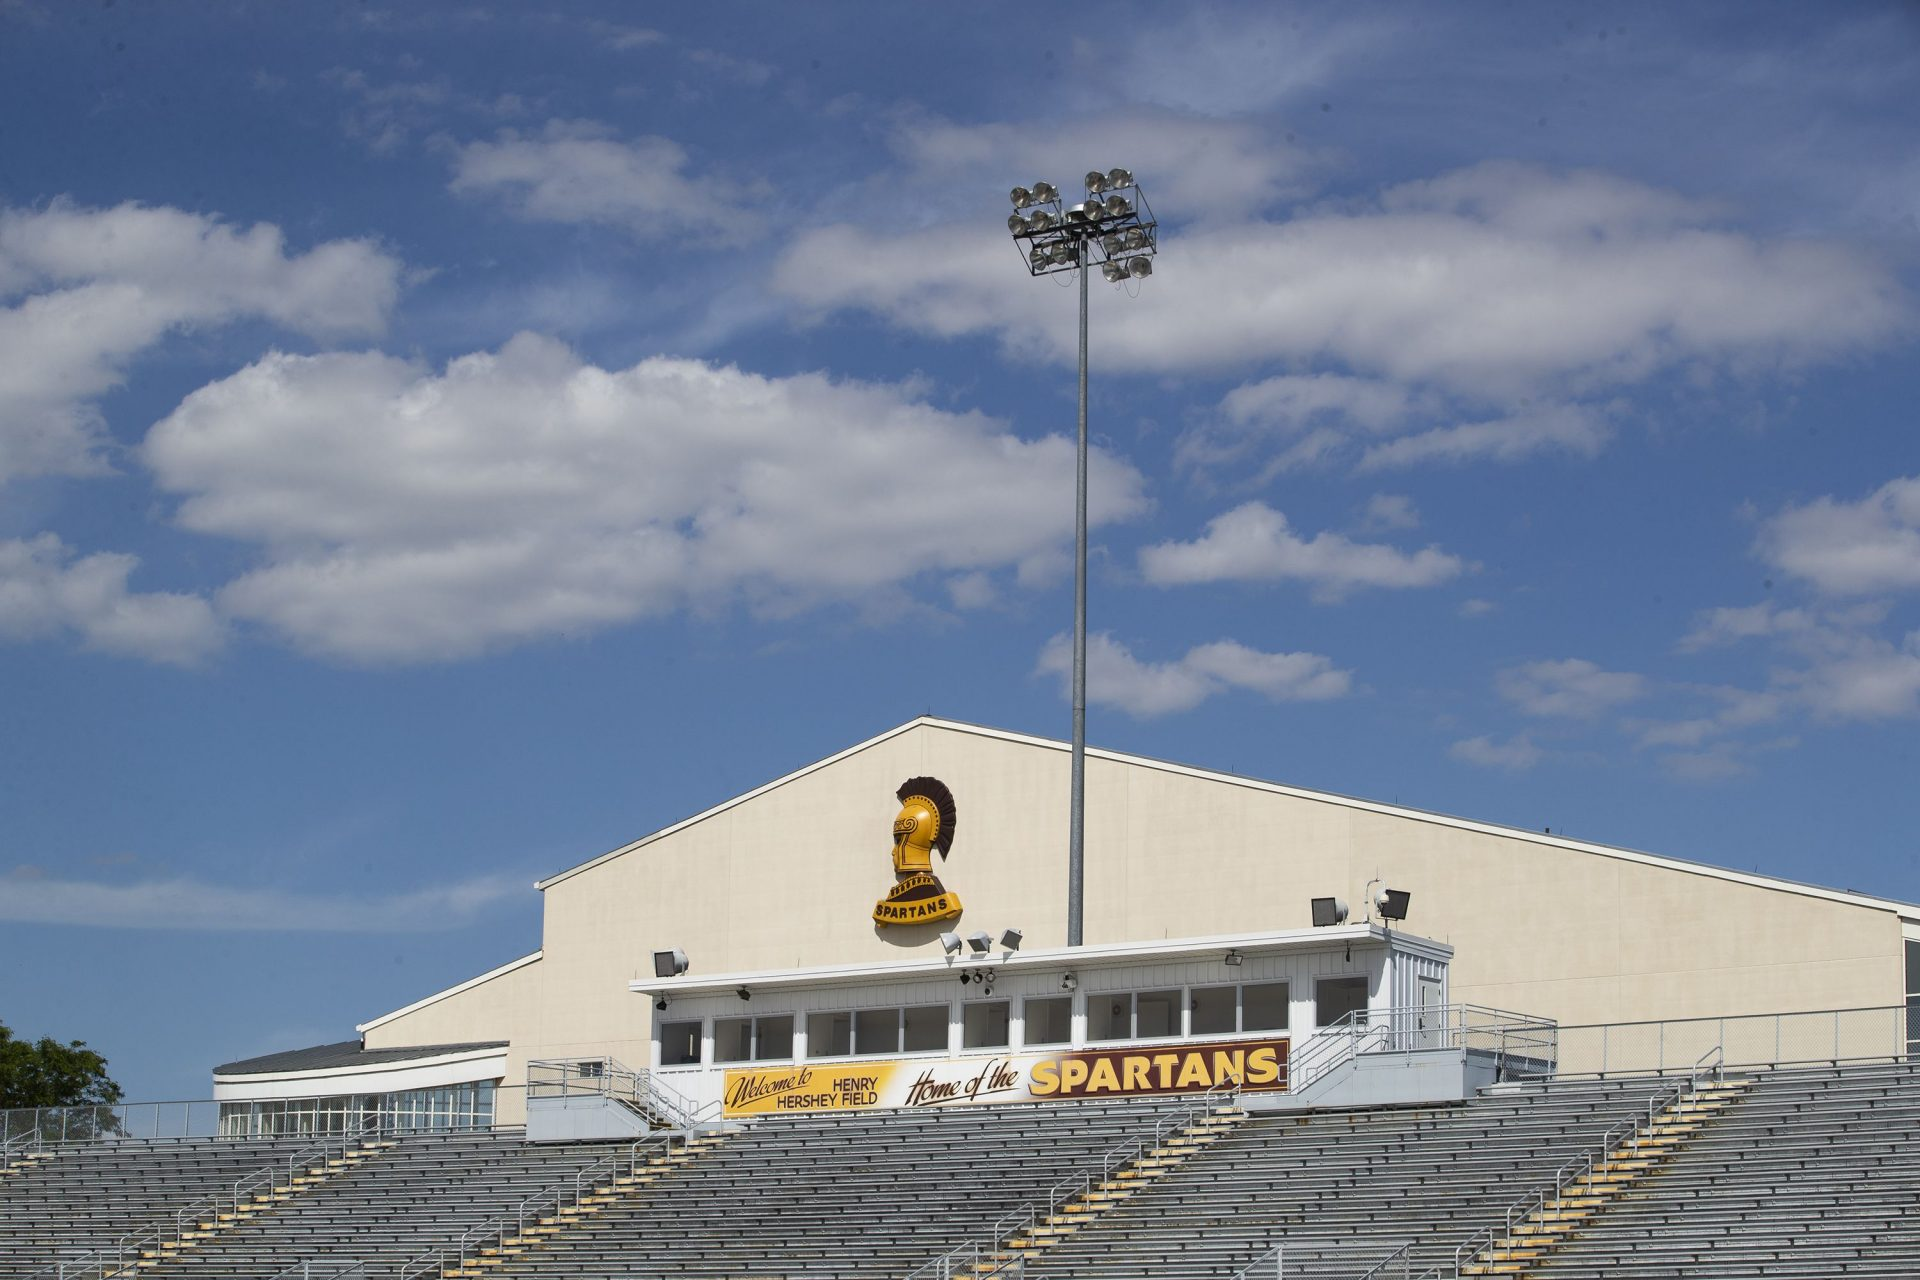 Over the decades, Milton Hershey School has invested many millions in its sprawling campus, including a 7,000-seat football stadium, at least 180 residential homes accommodating up to 12 students each, and its towering, domed Founders Hall, which was recently renovated.